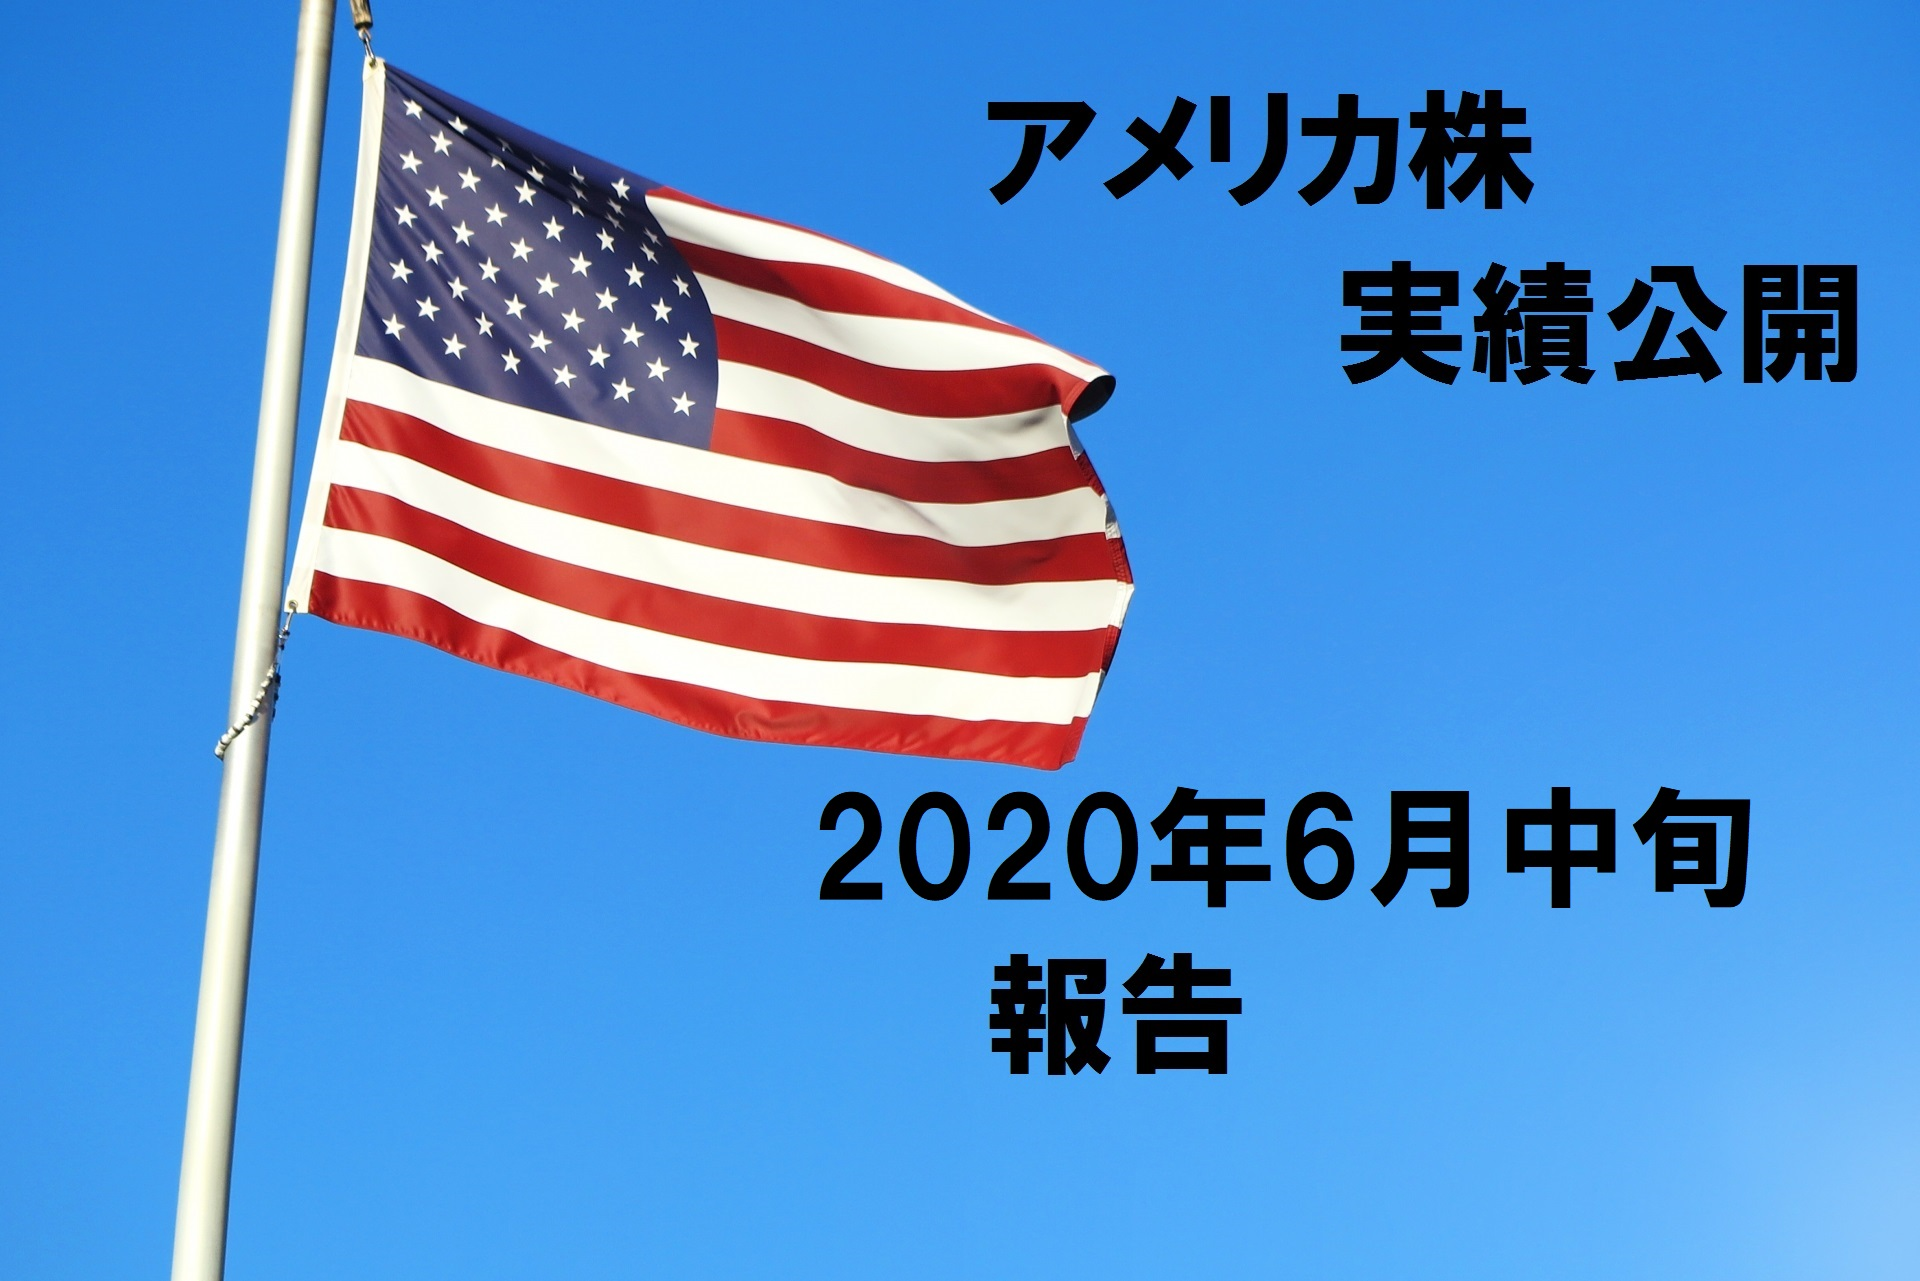 2020年6月中旬時点でのアメリカ株実績報告(第二波懸念での大暴落からの次の日の急上昇